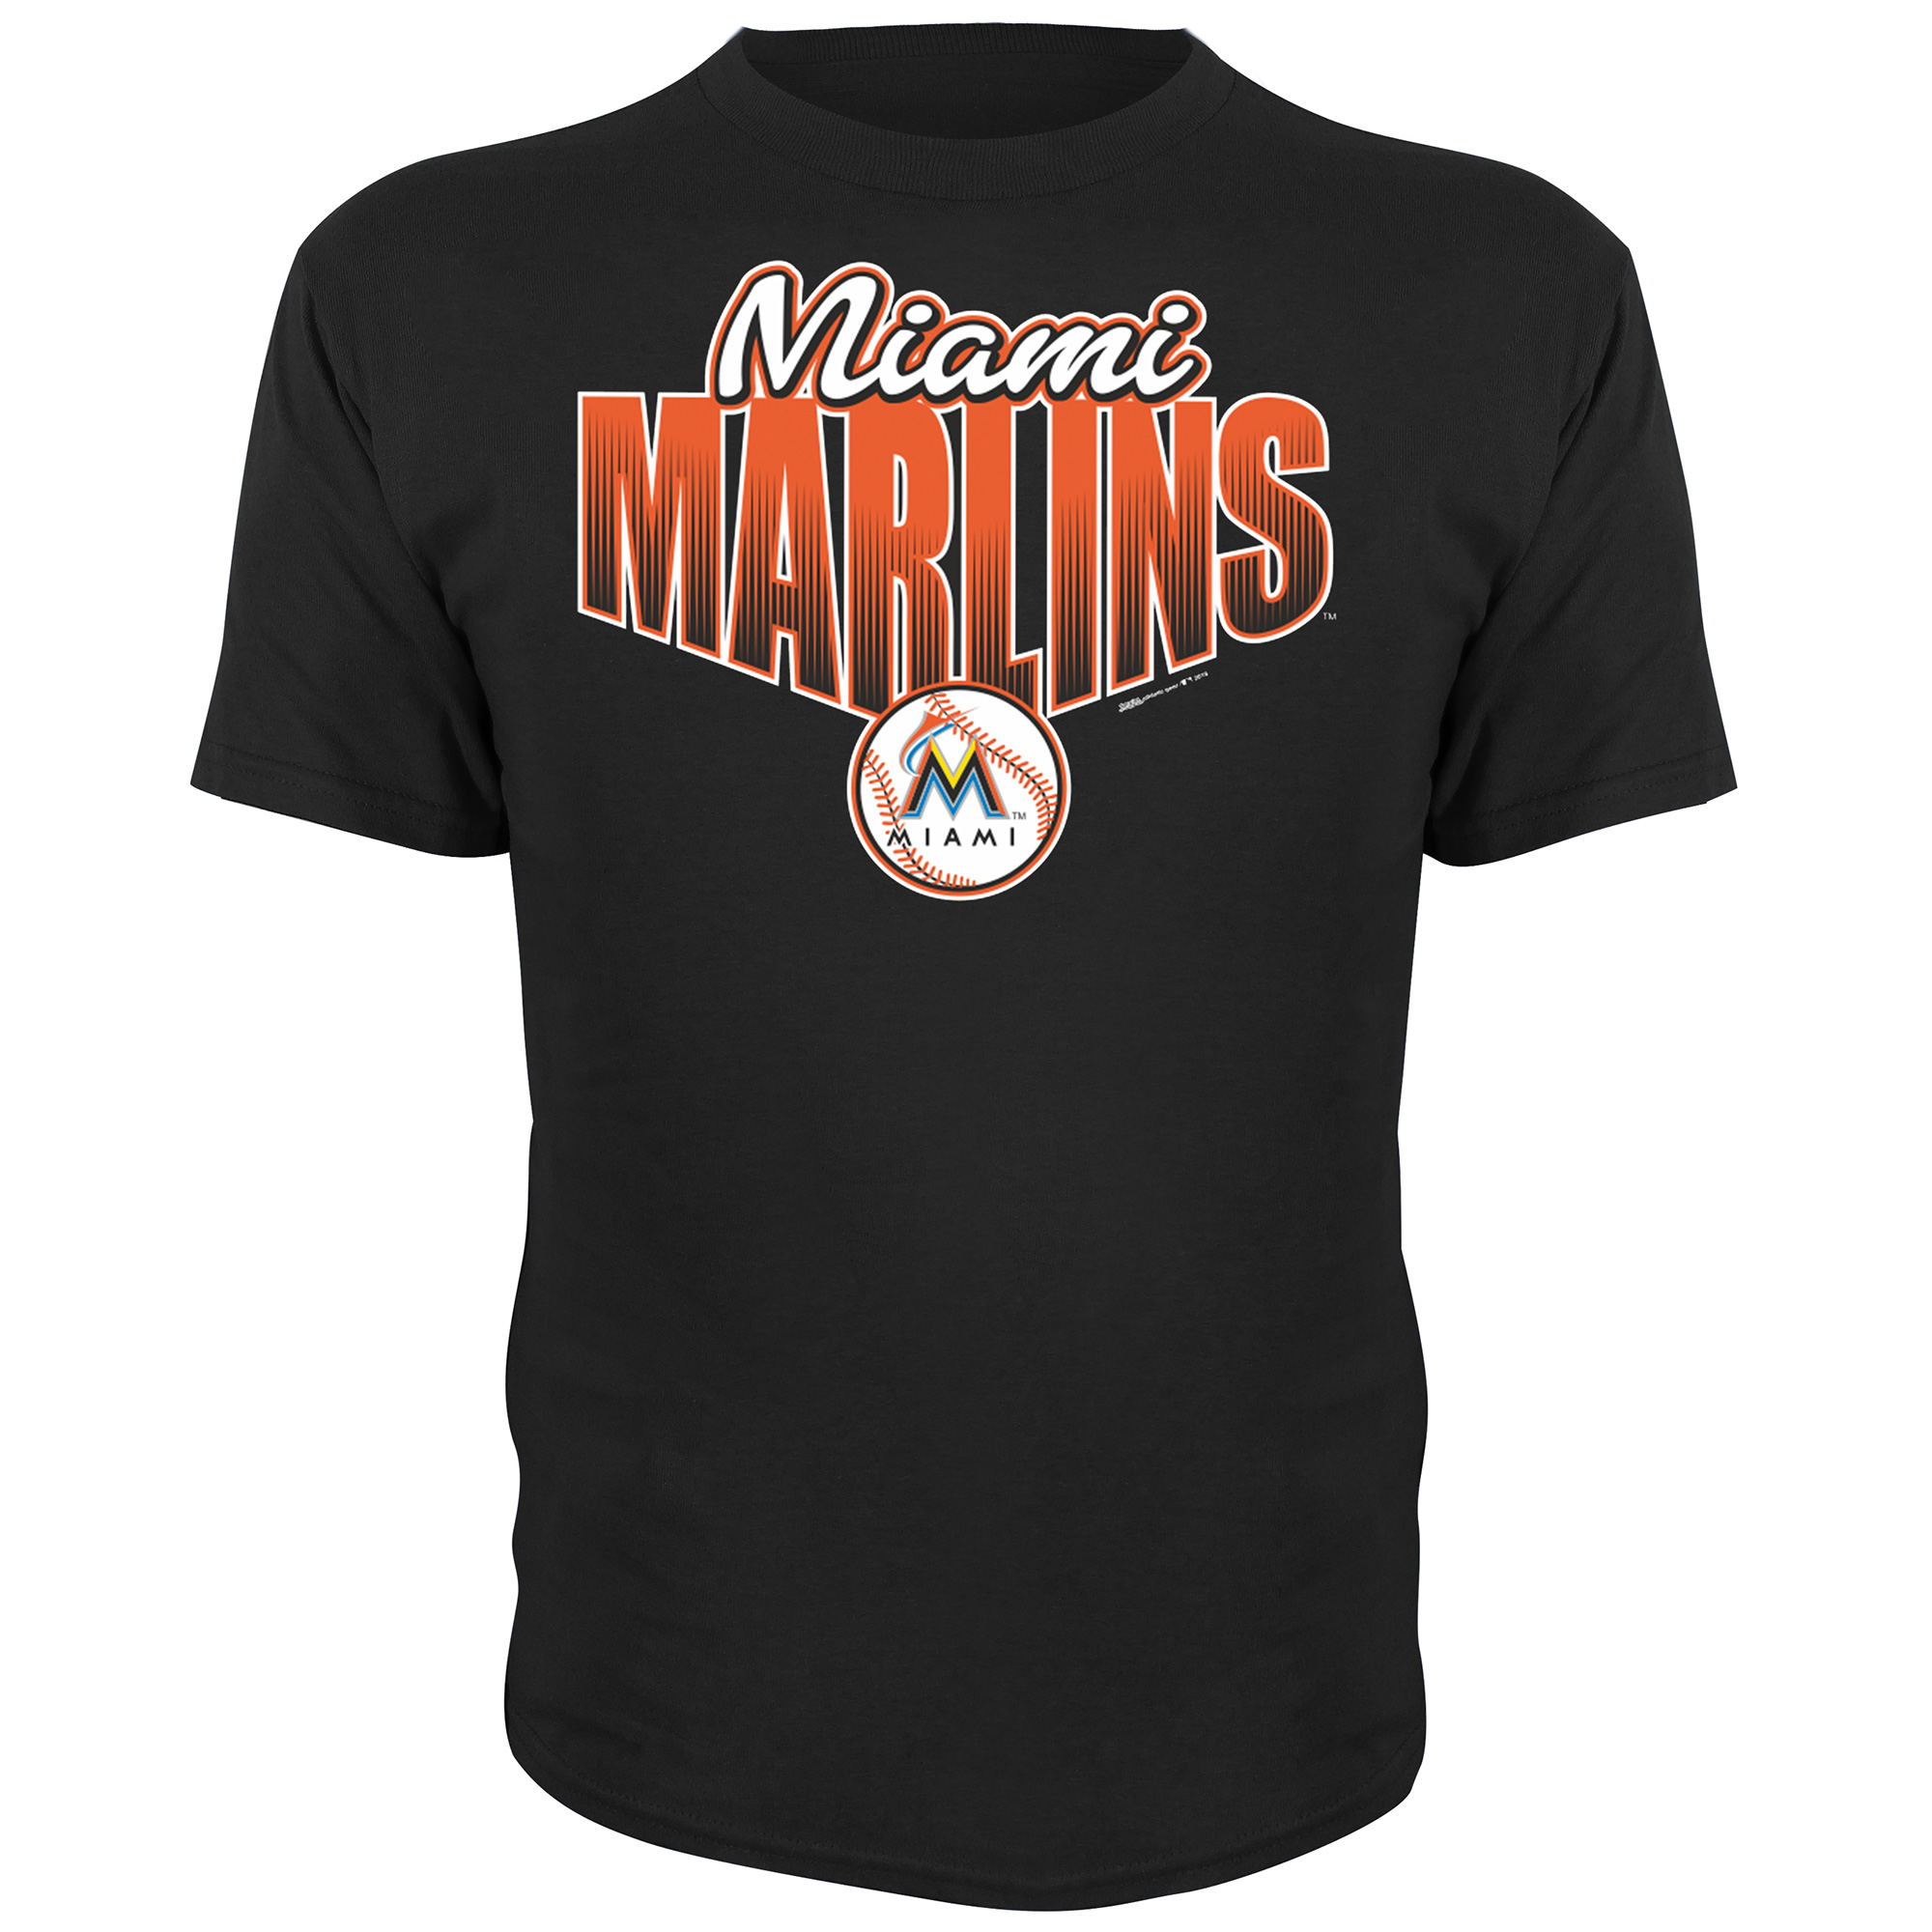 Miami Marlins Stitches Youth Gradient Text T-Shirt - Black